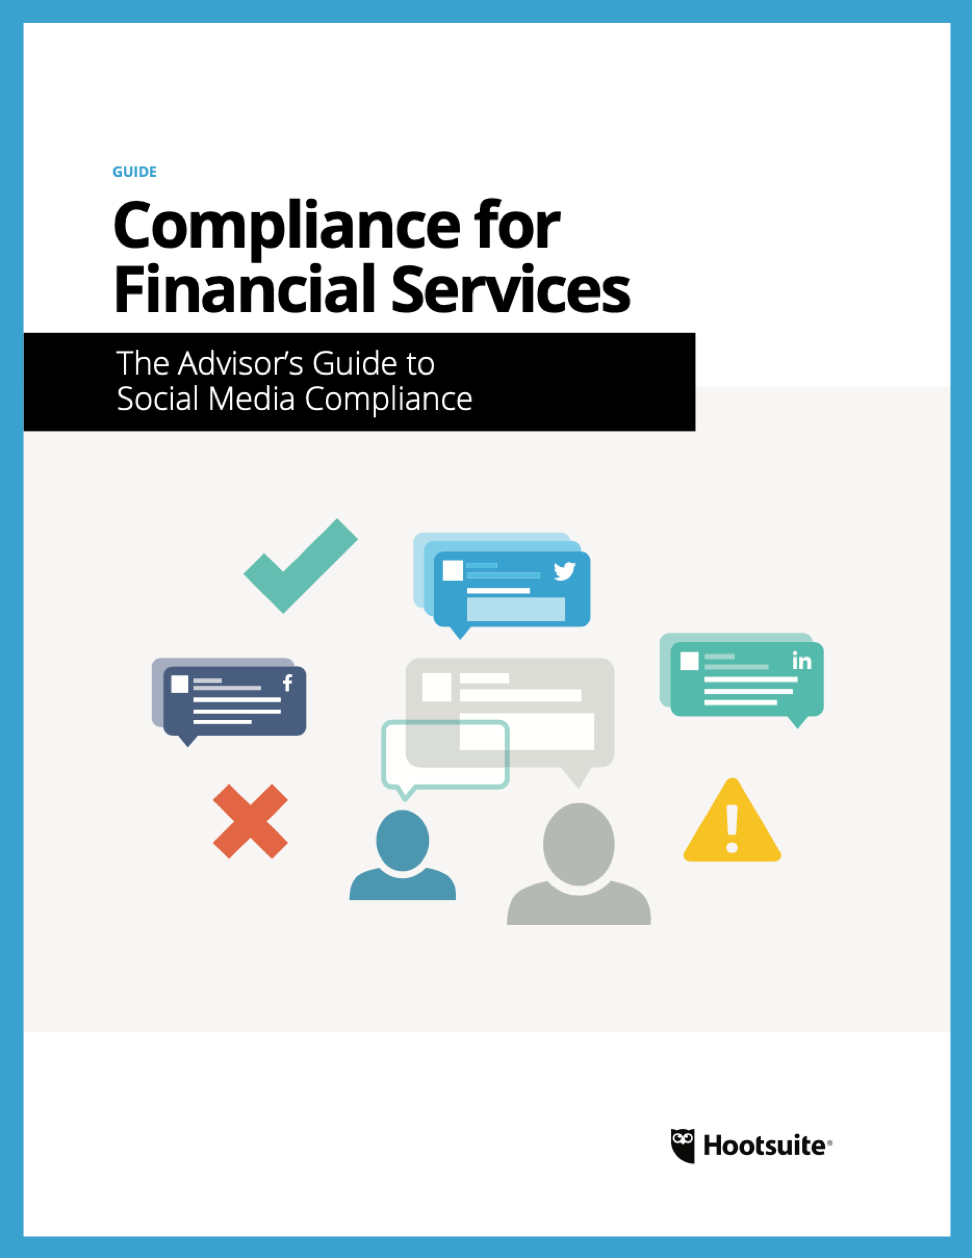 Compliance for Financial Services at Social-Media.press